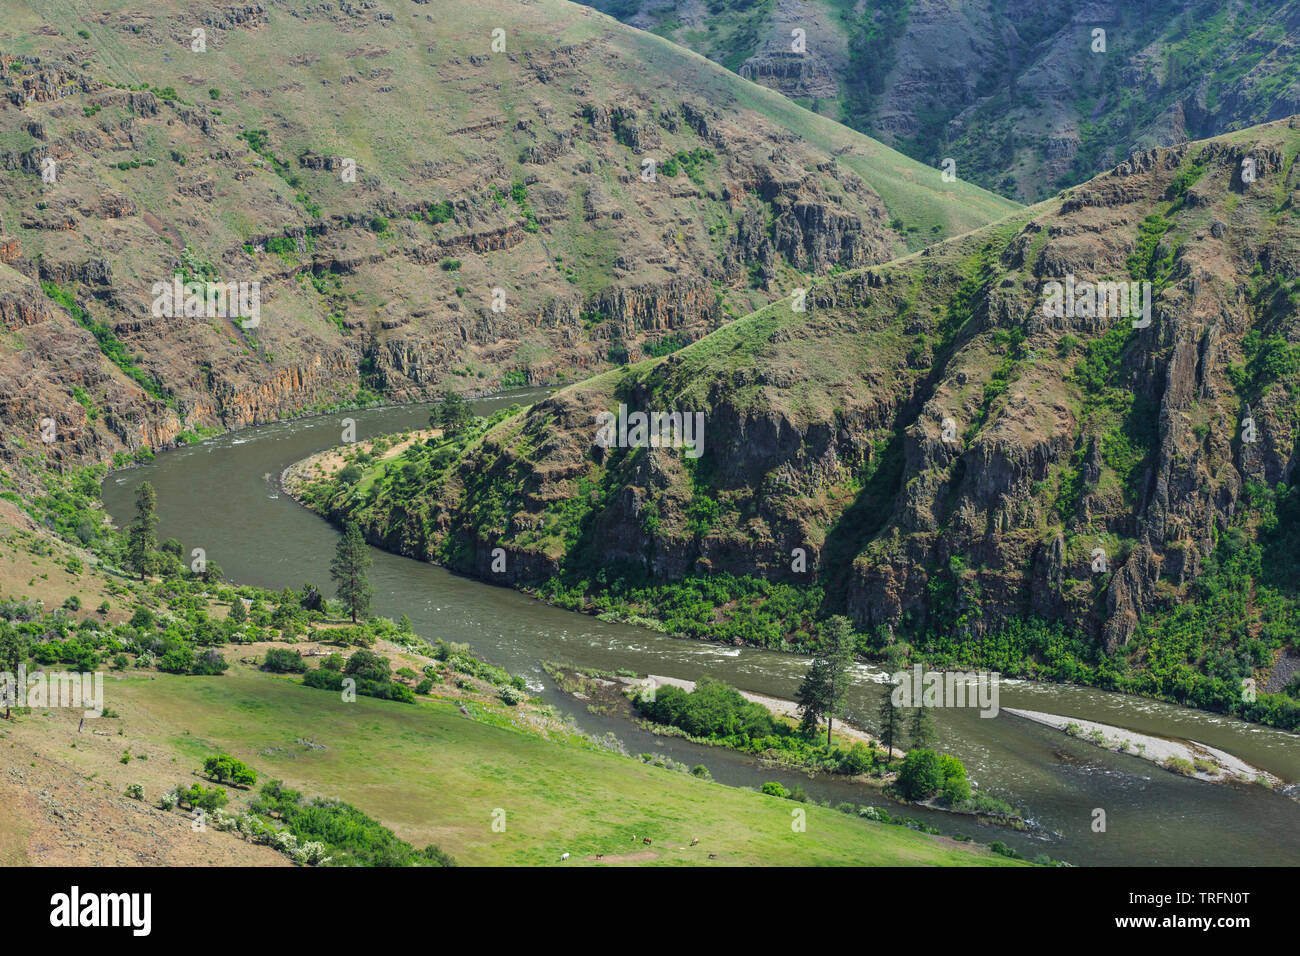 grande ronde river in canyon near anatone, washington - Stock Image